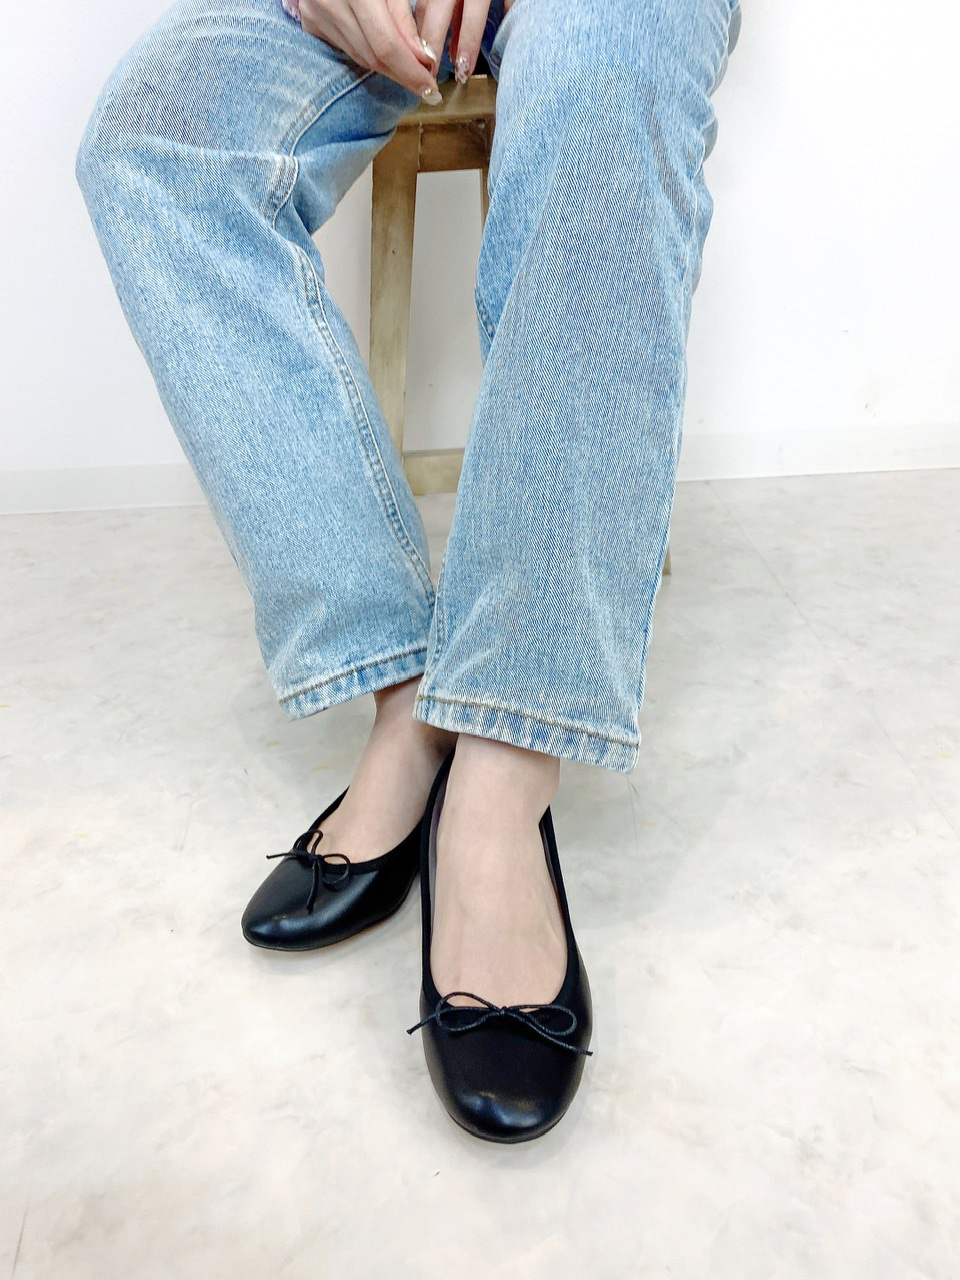 【OR】 ballet shoes